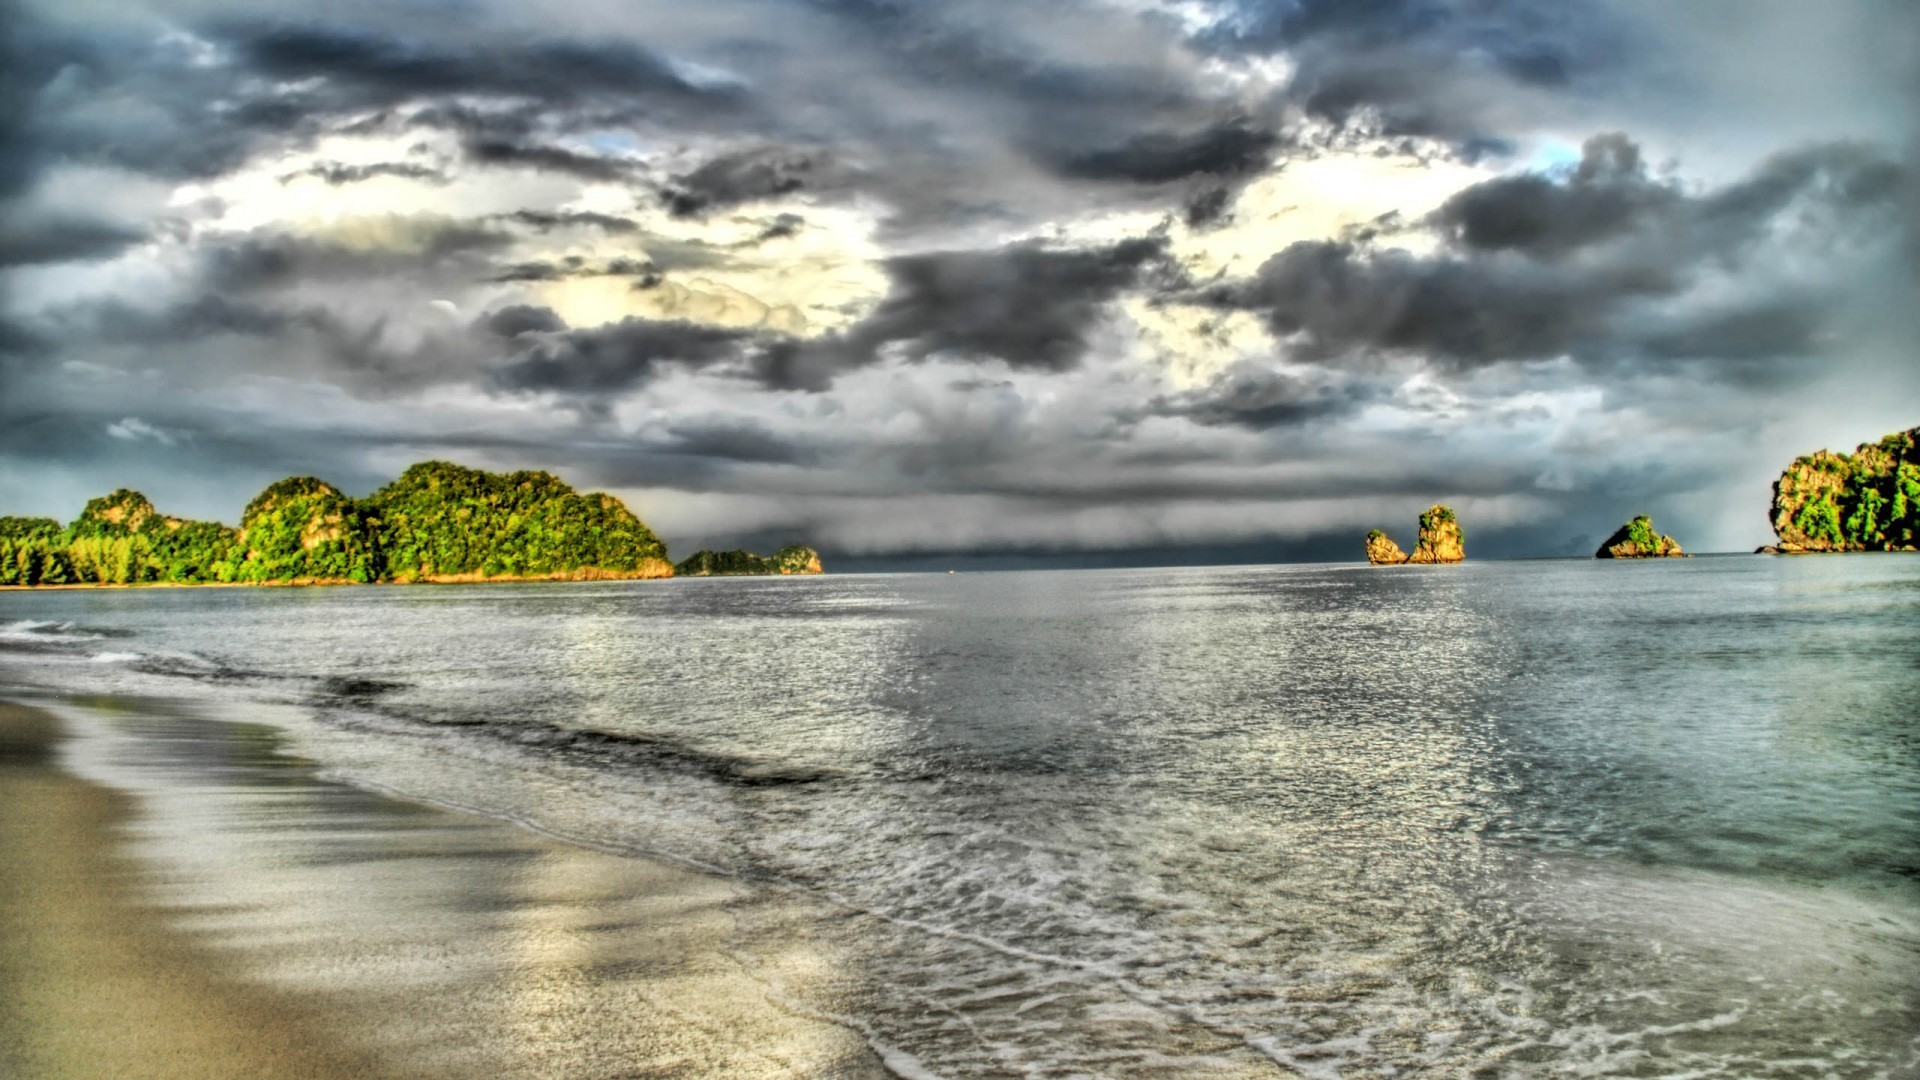 Landscapes HDR Photography Beaches HD Wallpaper